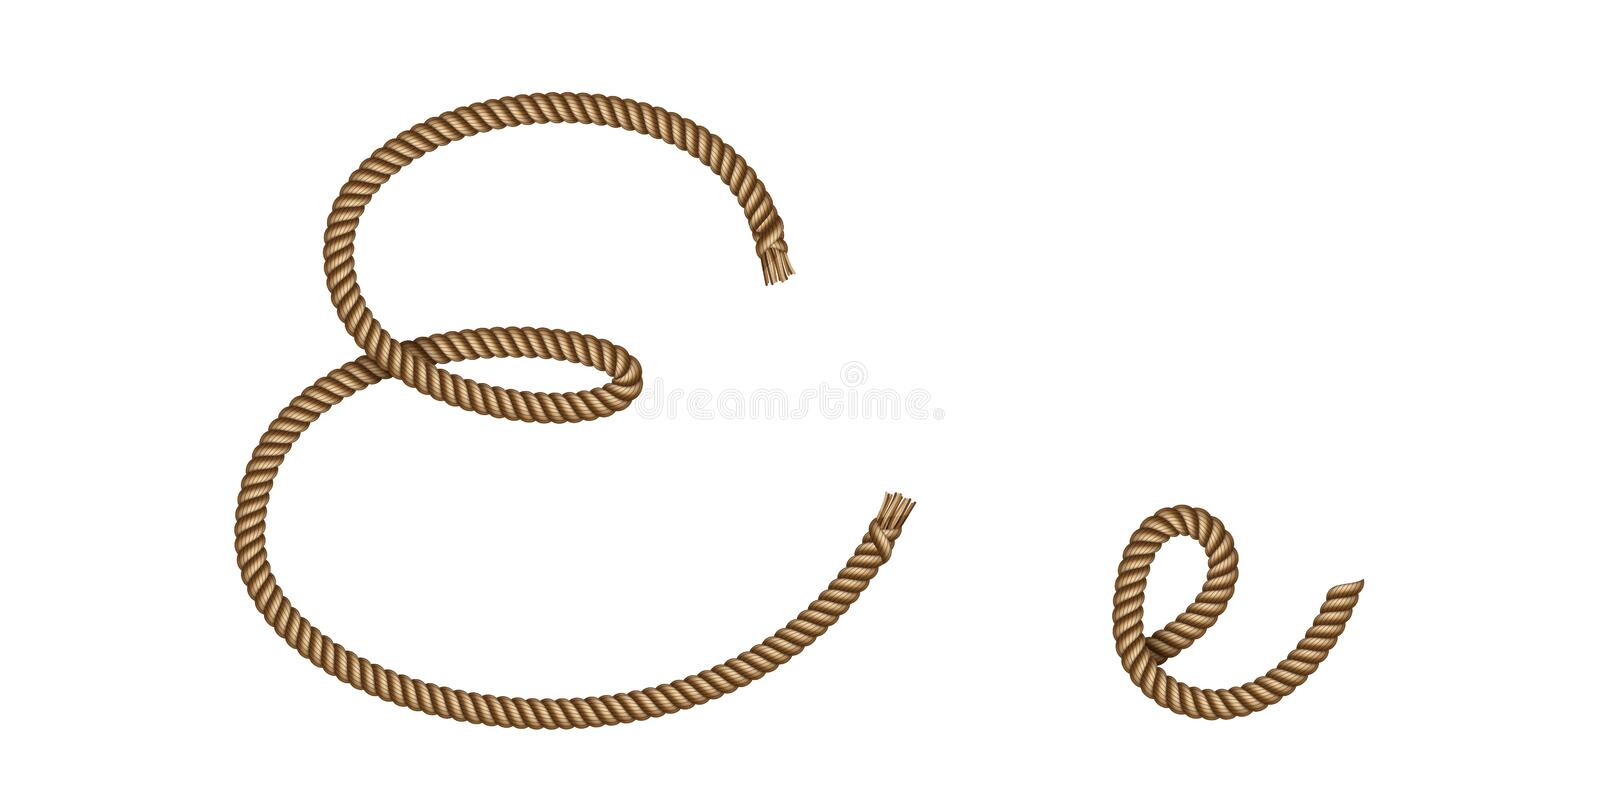 Rope hand drawn letter E royalty free illustration